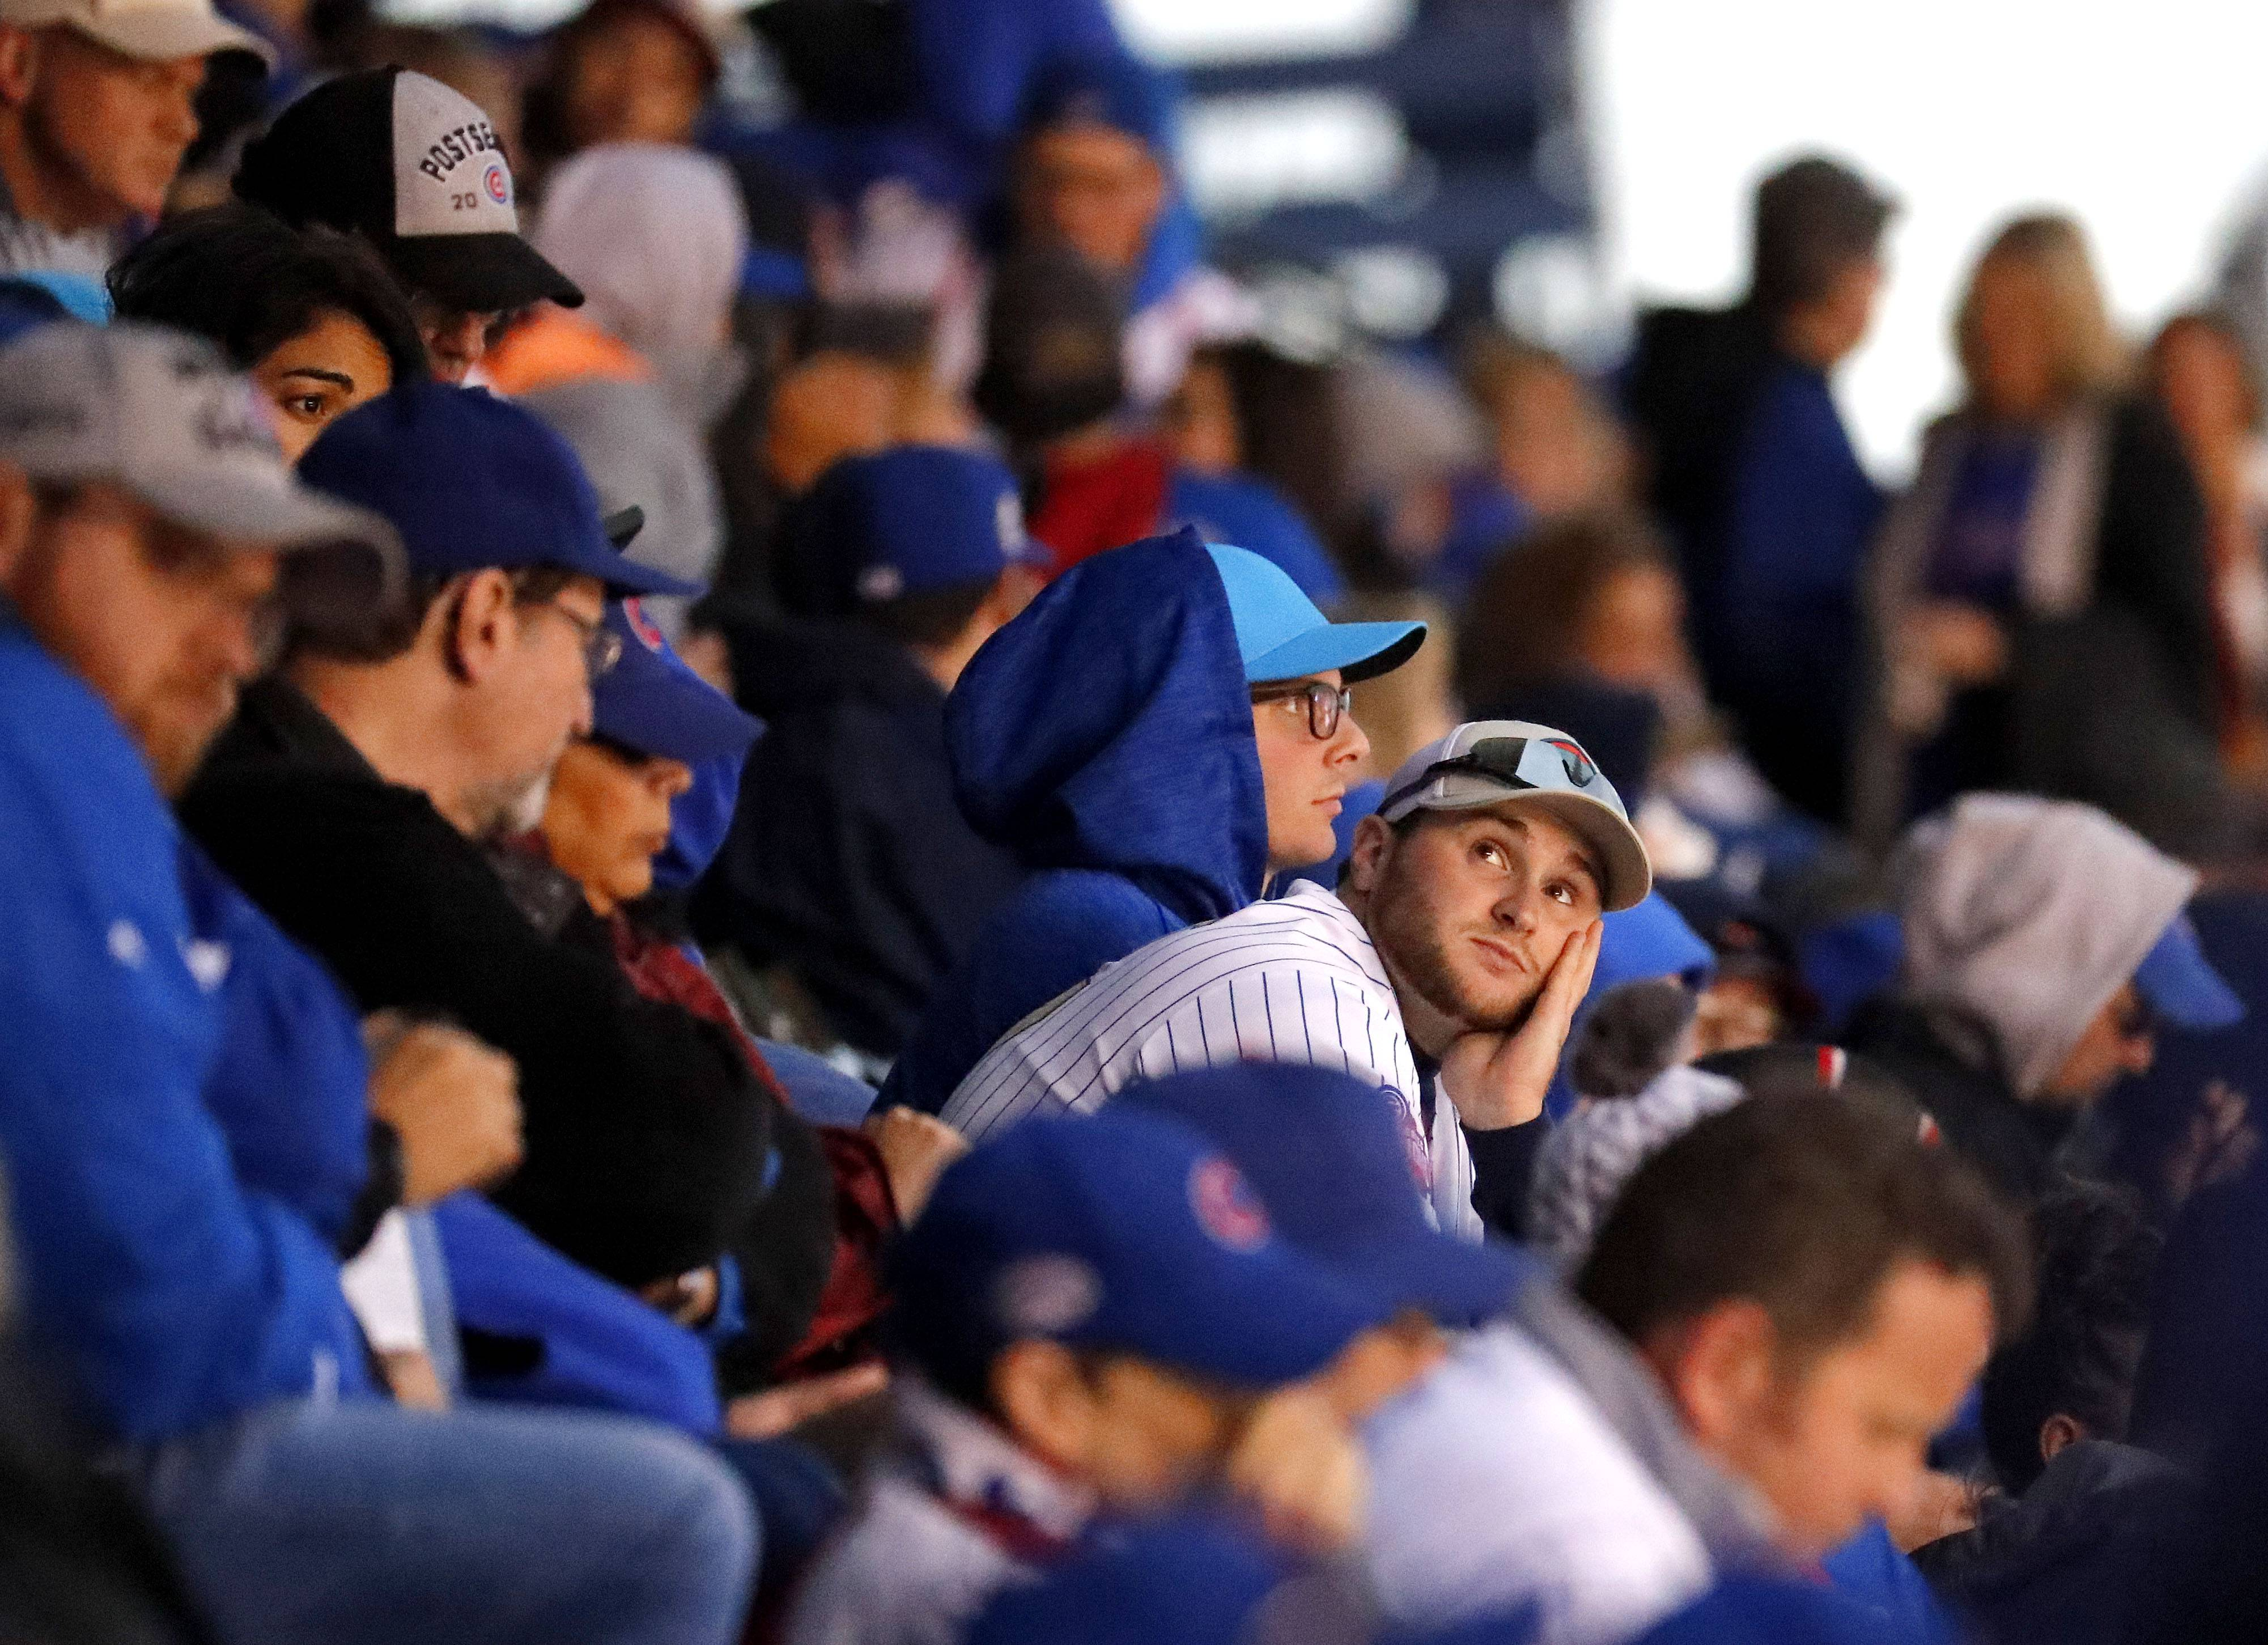 Cubs game outlook: Highest chance of rain ending, but still pack your poncho